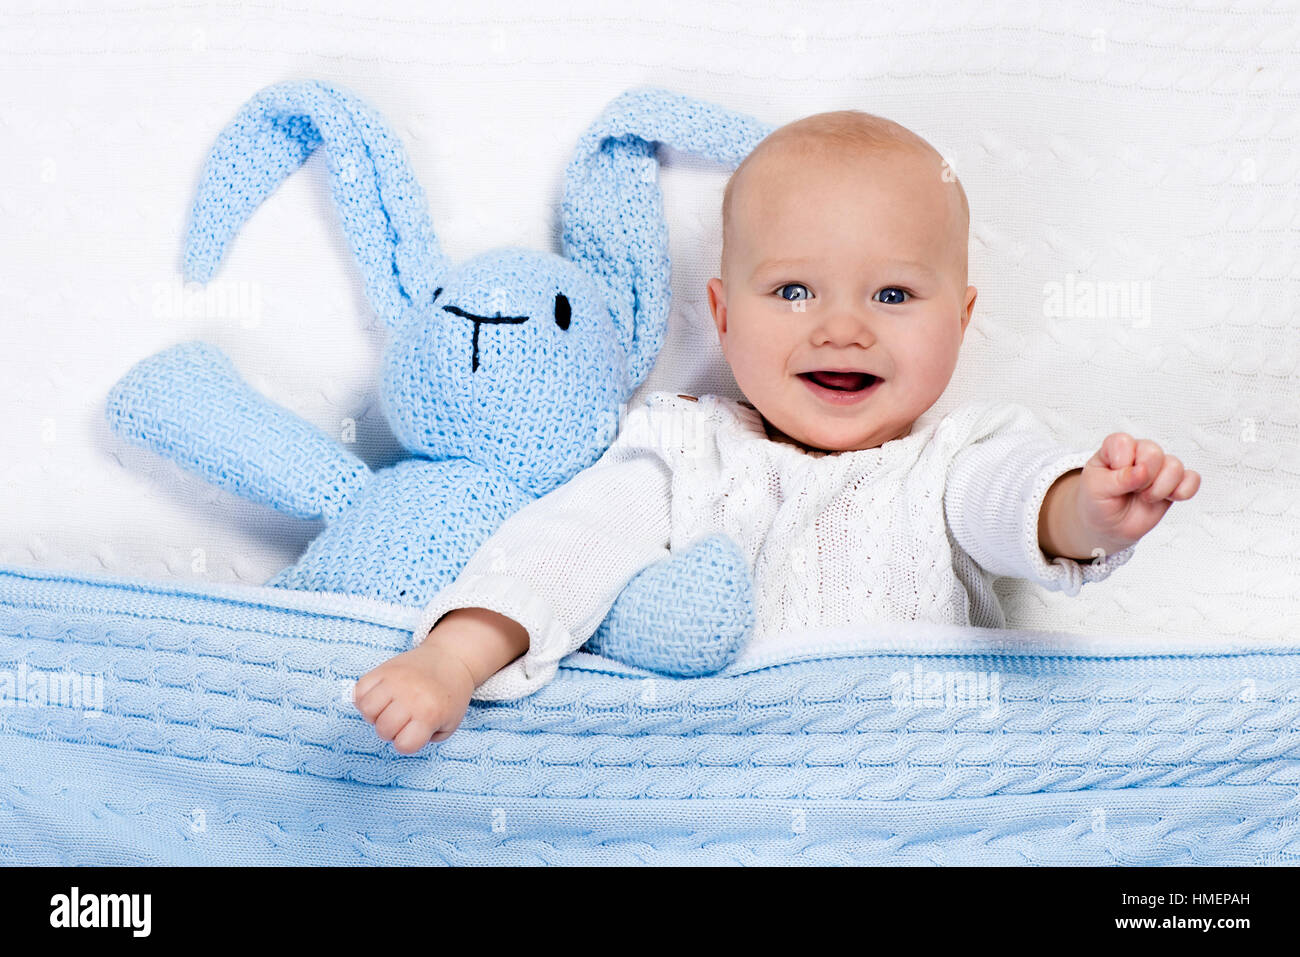 119ff99f11d4 Funny little baby wearing a warm knitted jacket playing with toy ...